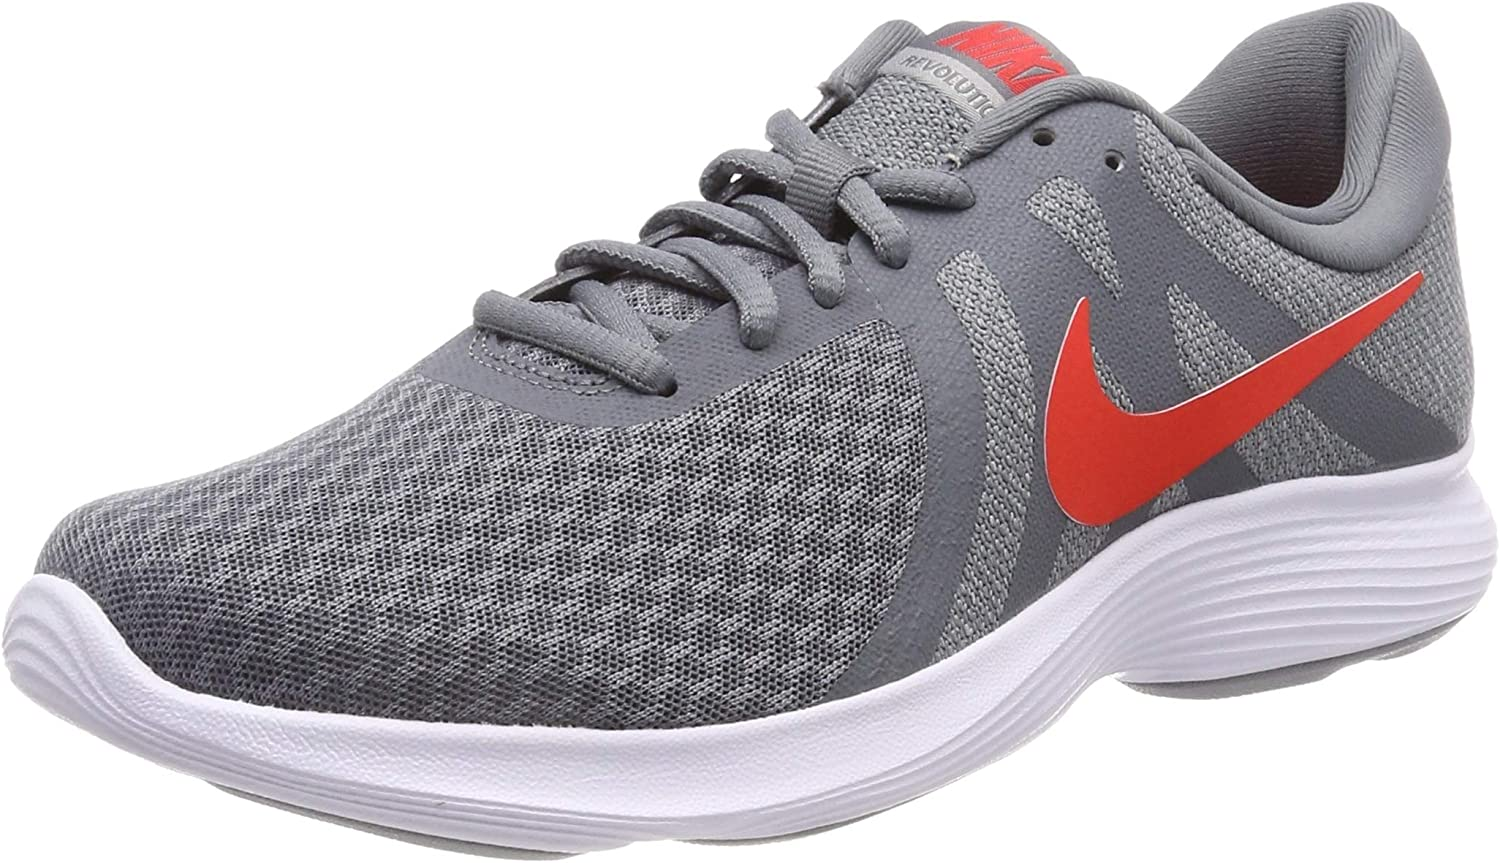 Nike Men's Revolution 4 EU Competition Running shoes, Multicolour (Cool Habablack Red Wolf Grey White 013), 6 UK